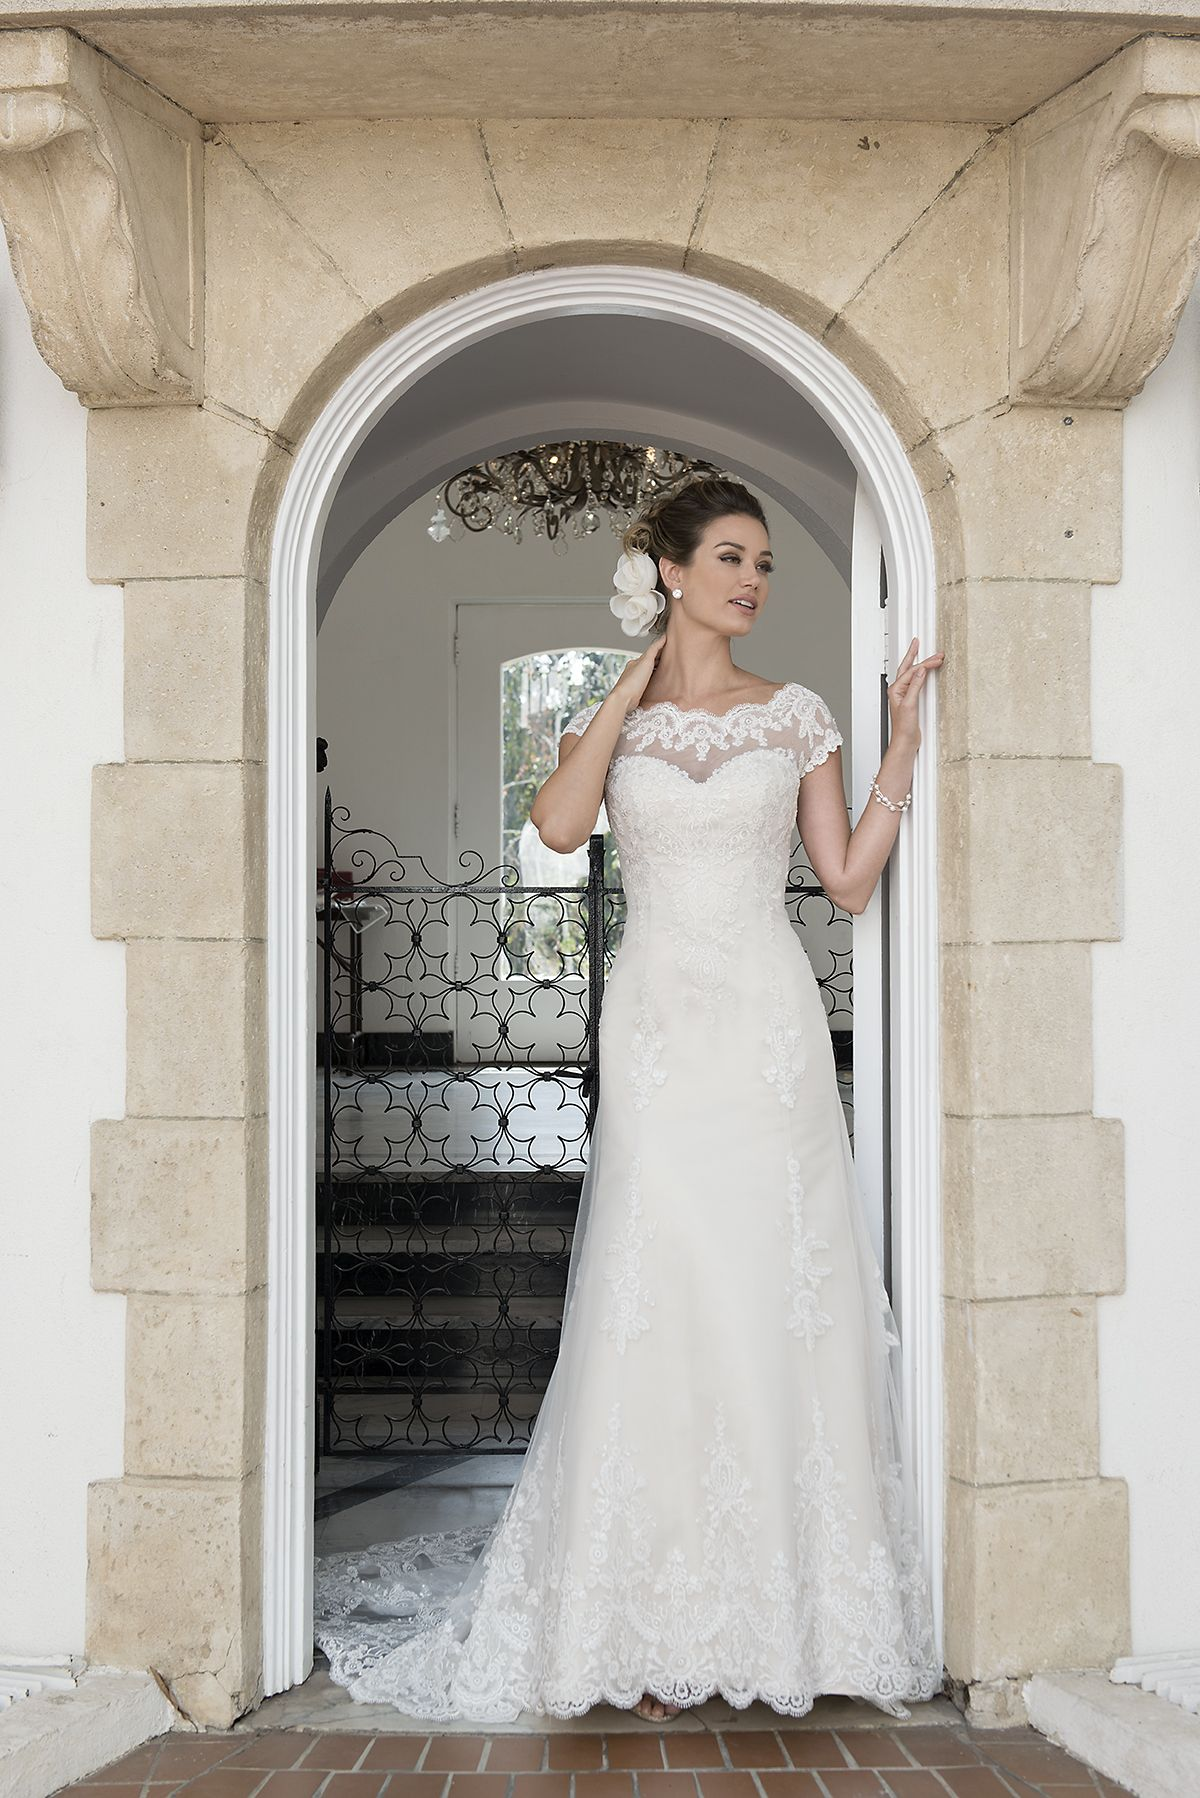 Venus Bridal Gown Stunning Lace Over Deco Gold Satin